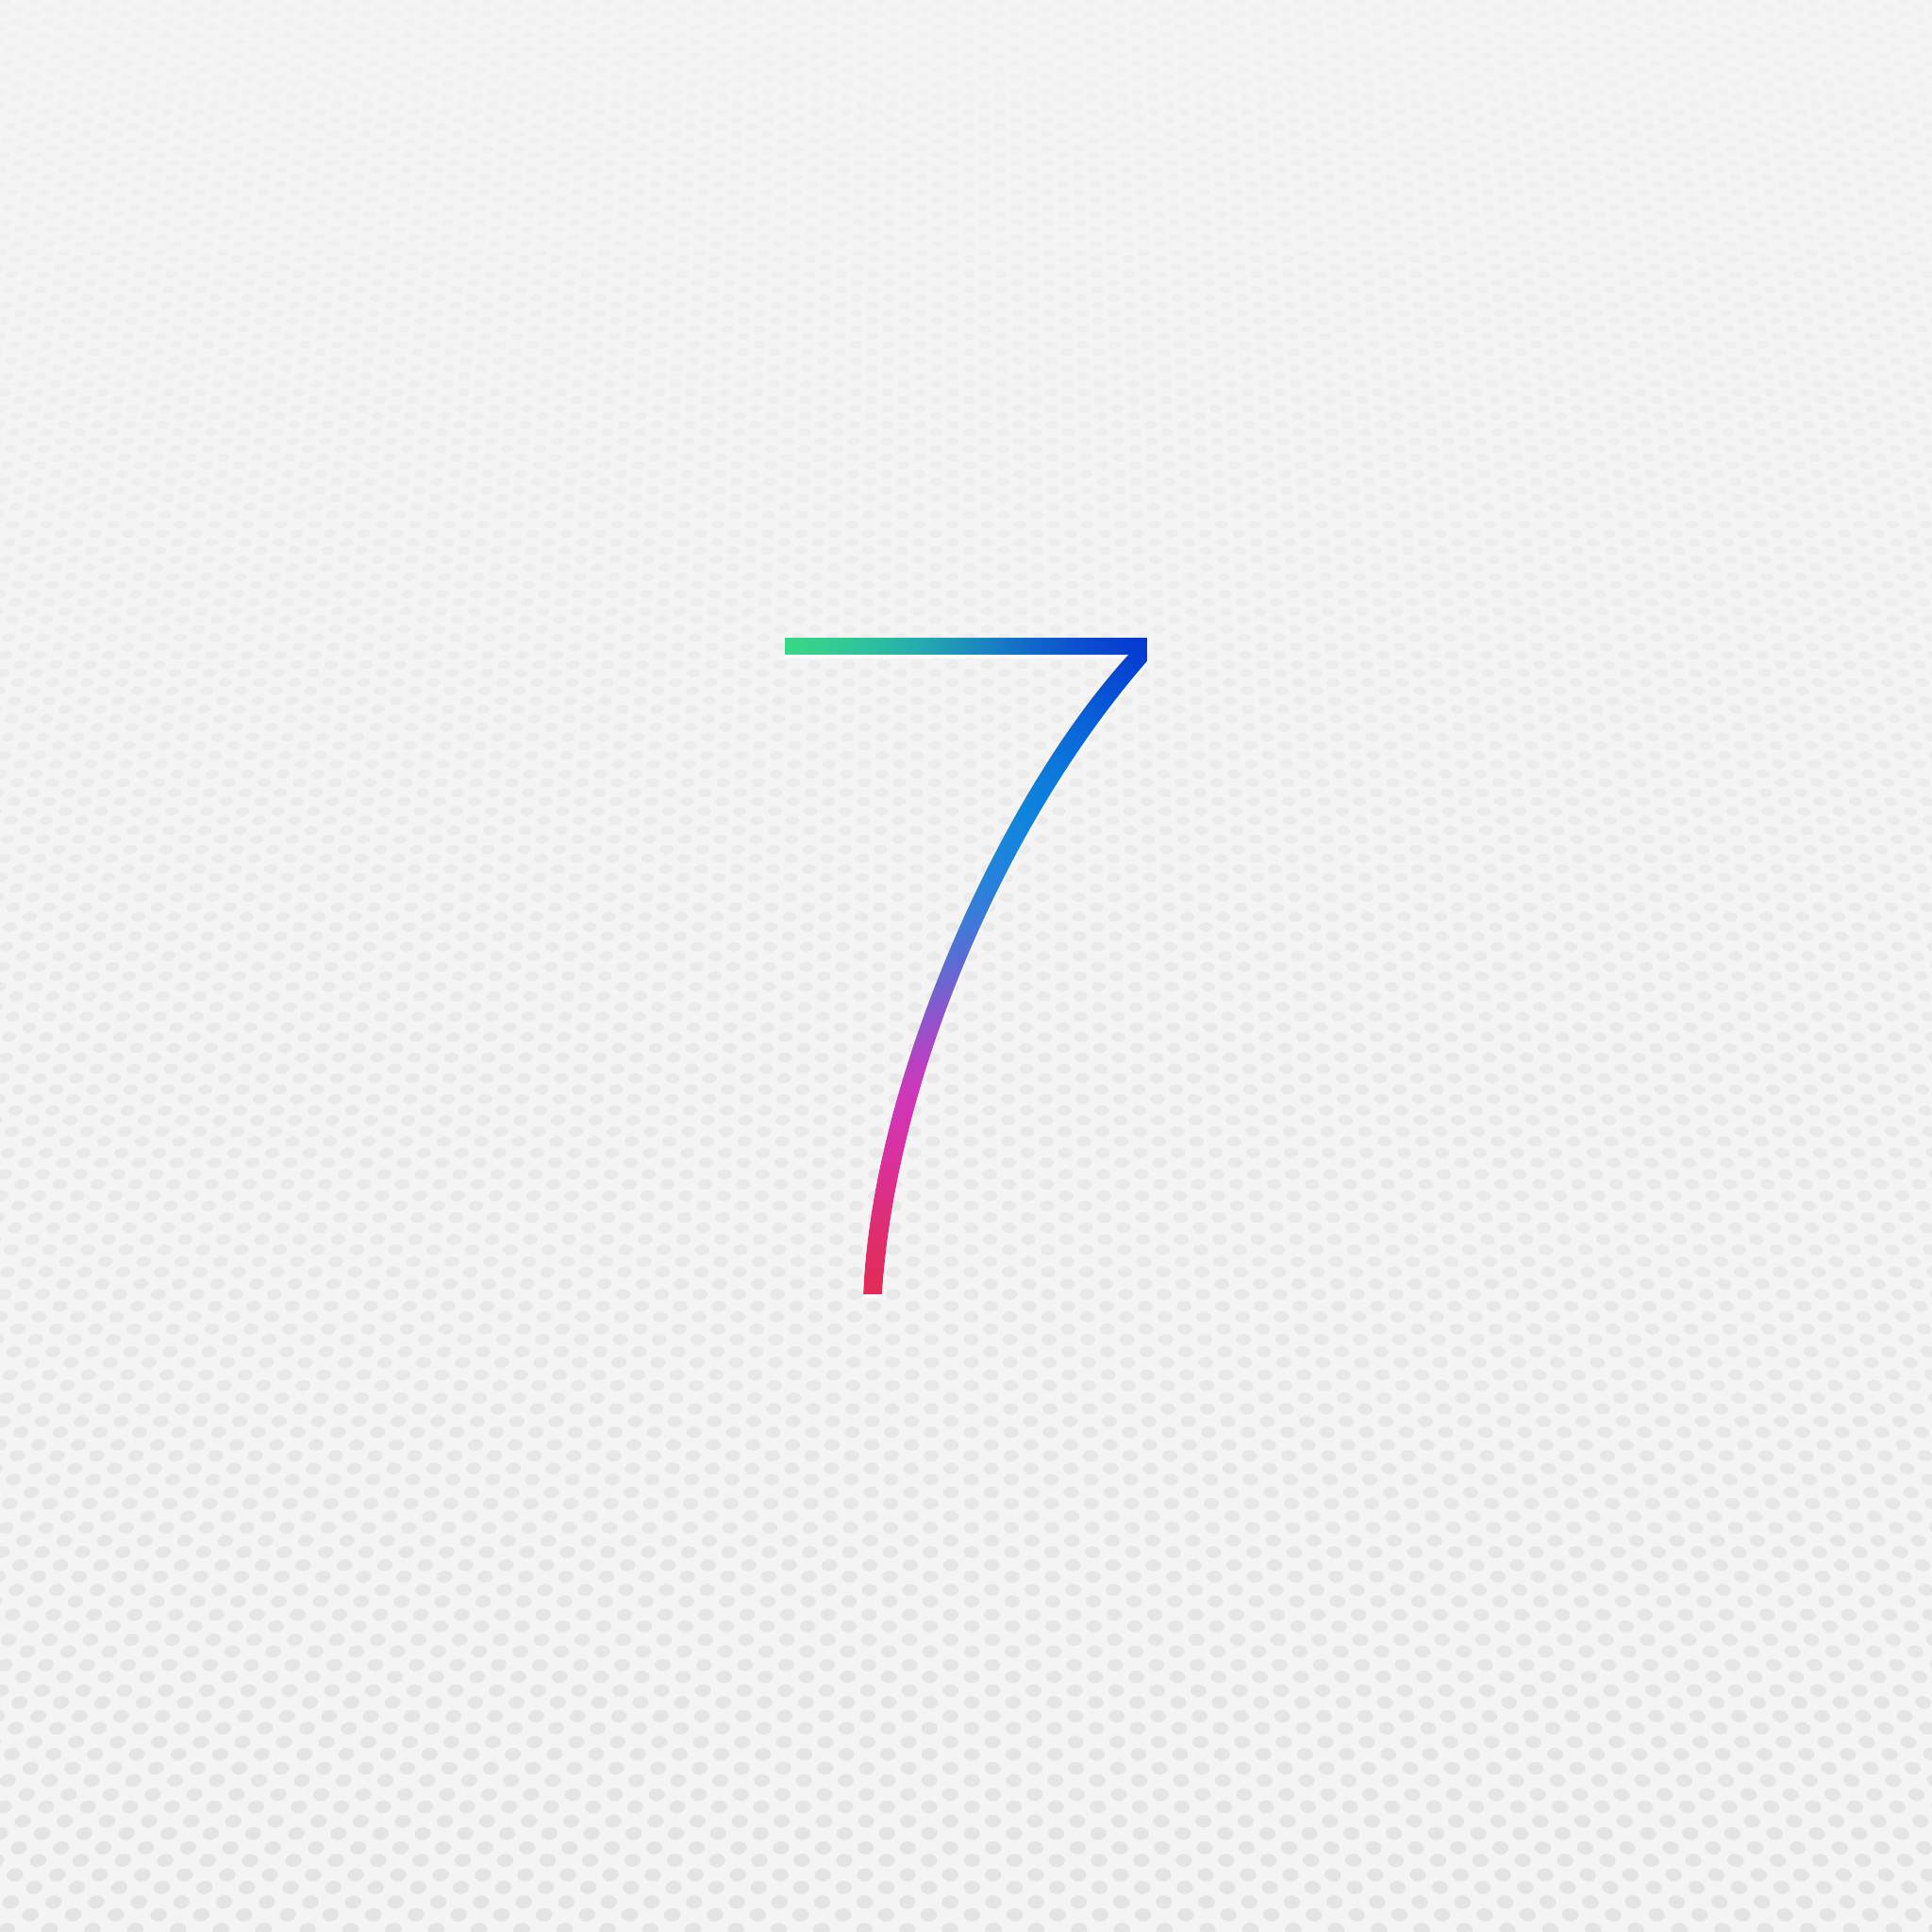 Free Download Wwdc 2013 Ios 7 Und Os X 109 Wallpapers